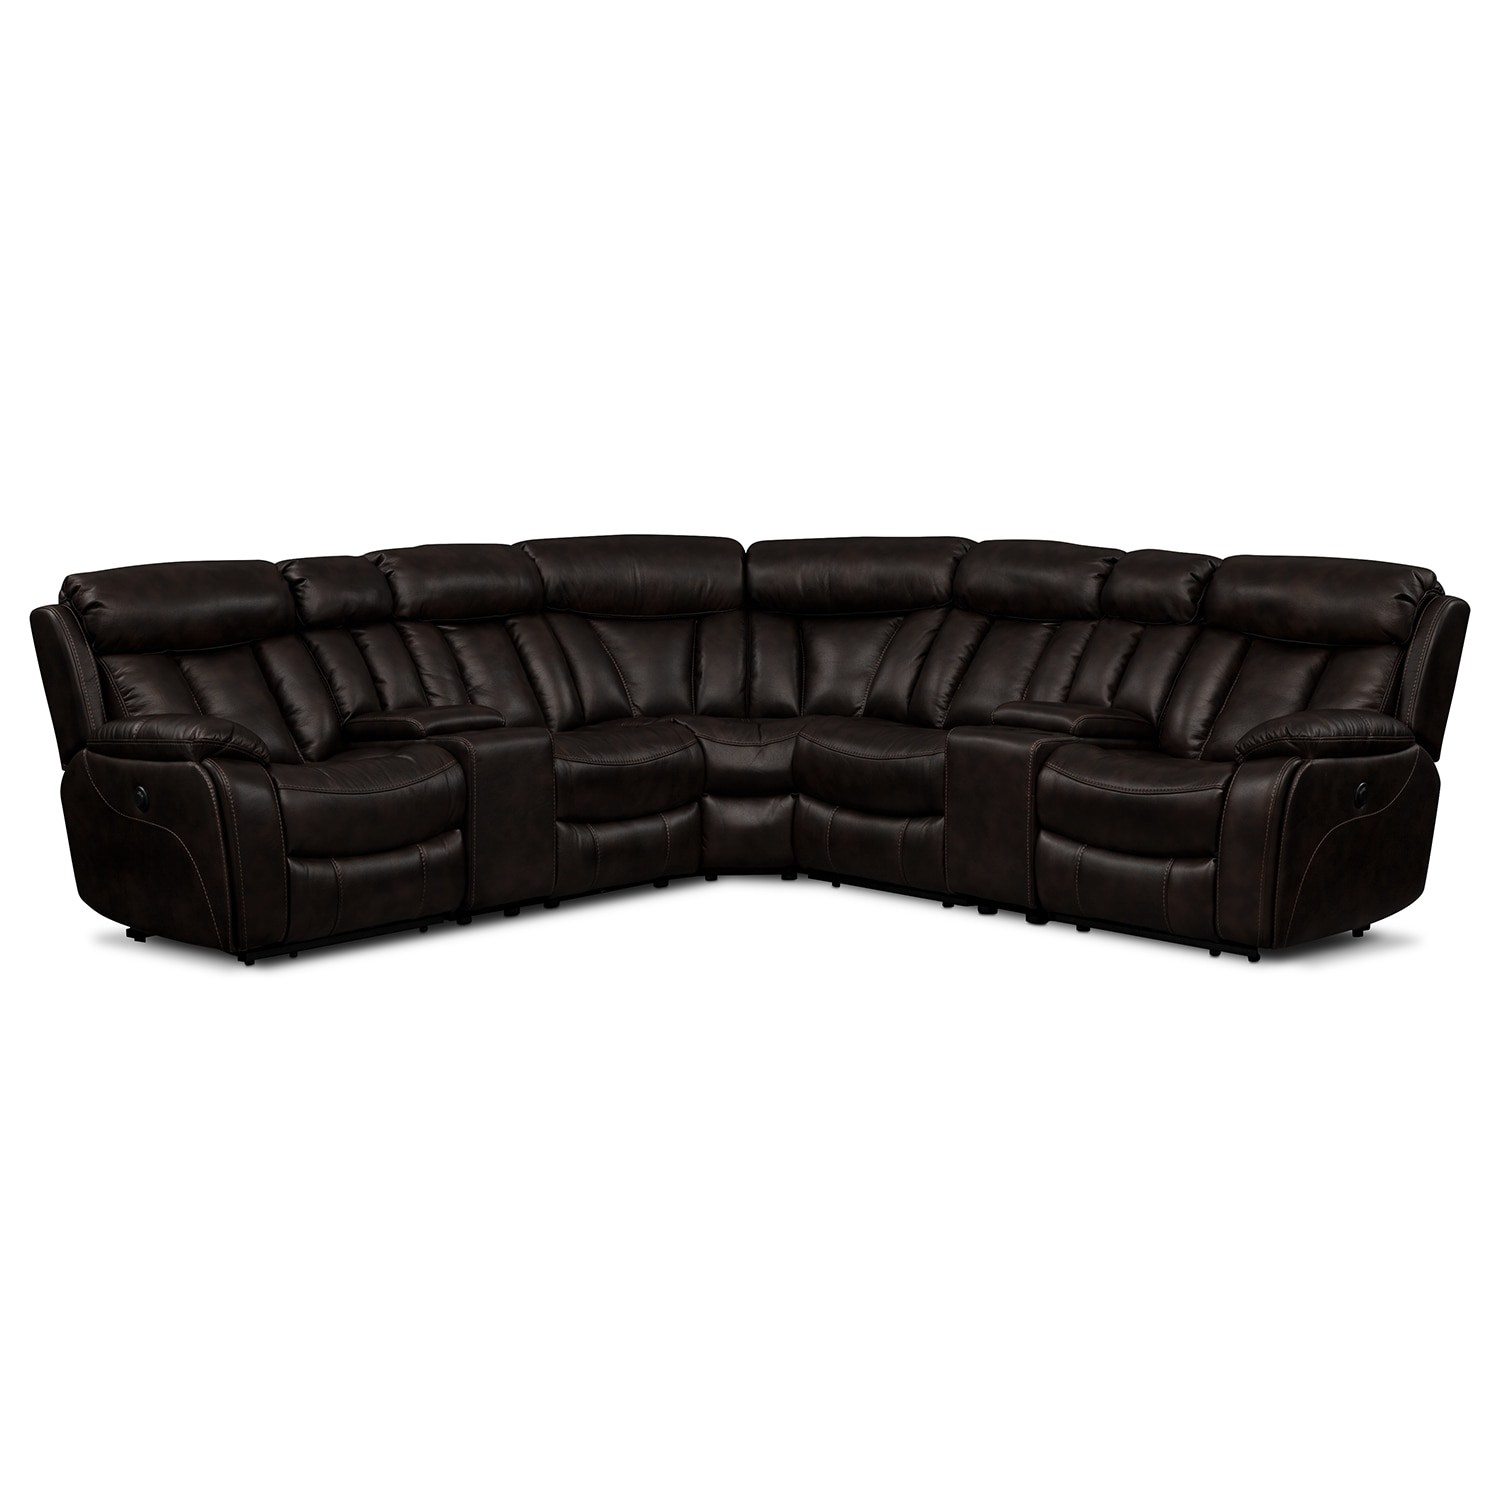 Living Room Furniture - Diablo 7 Pc. Power Reclining Sectional (Alternate)